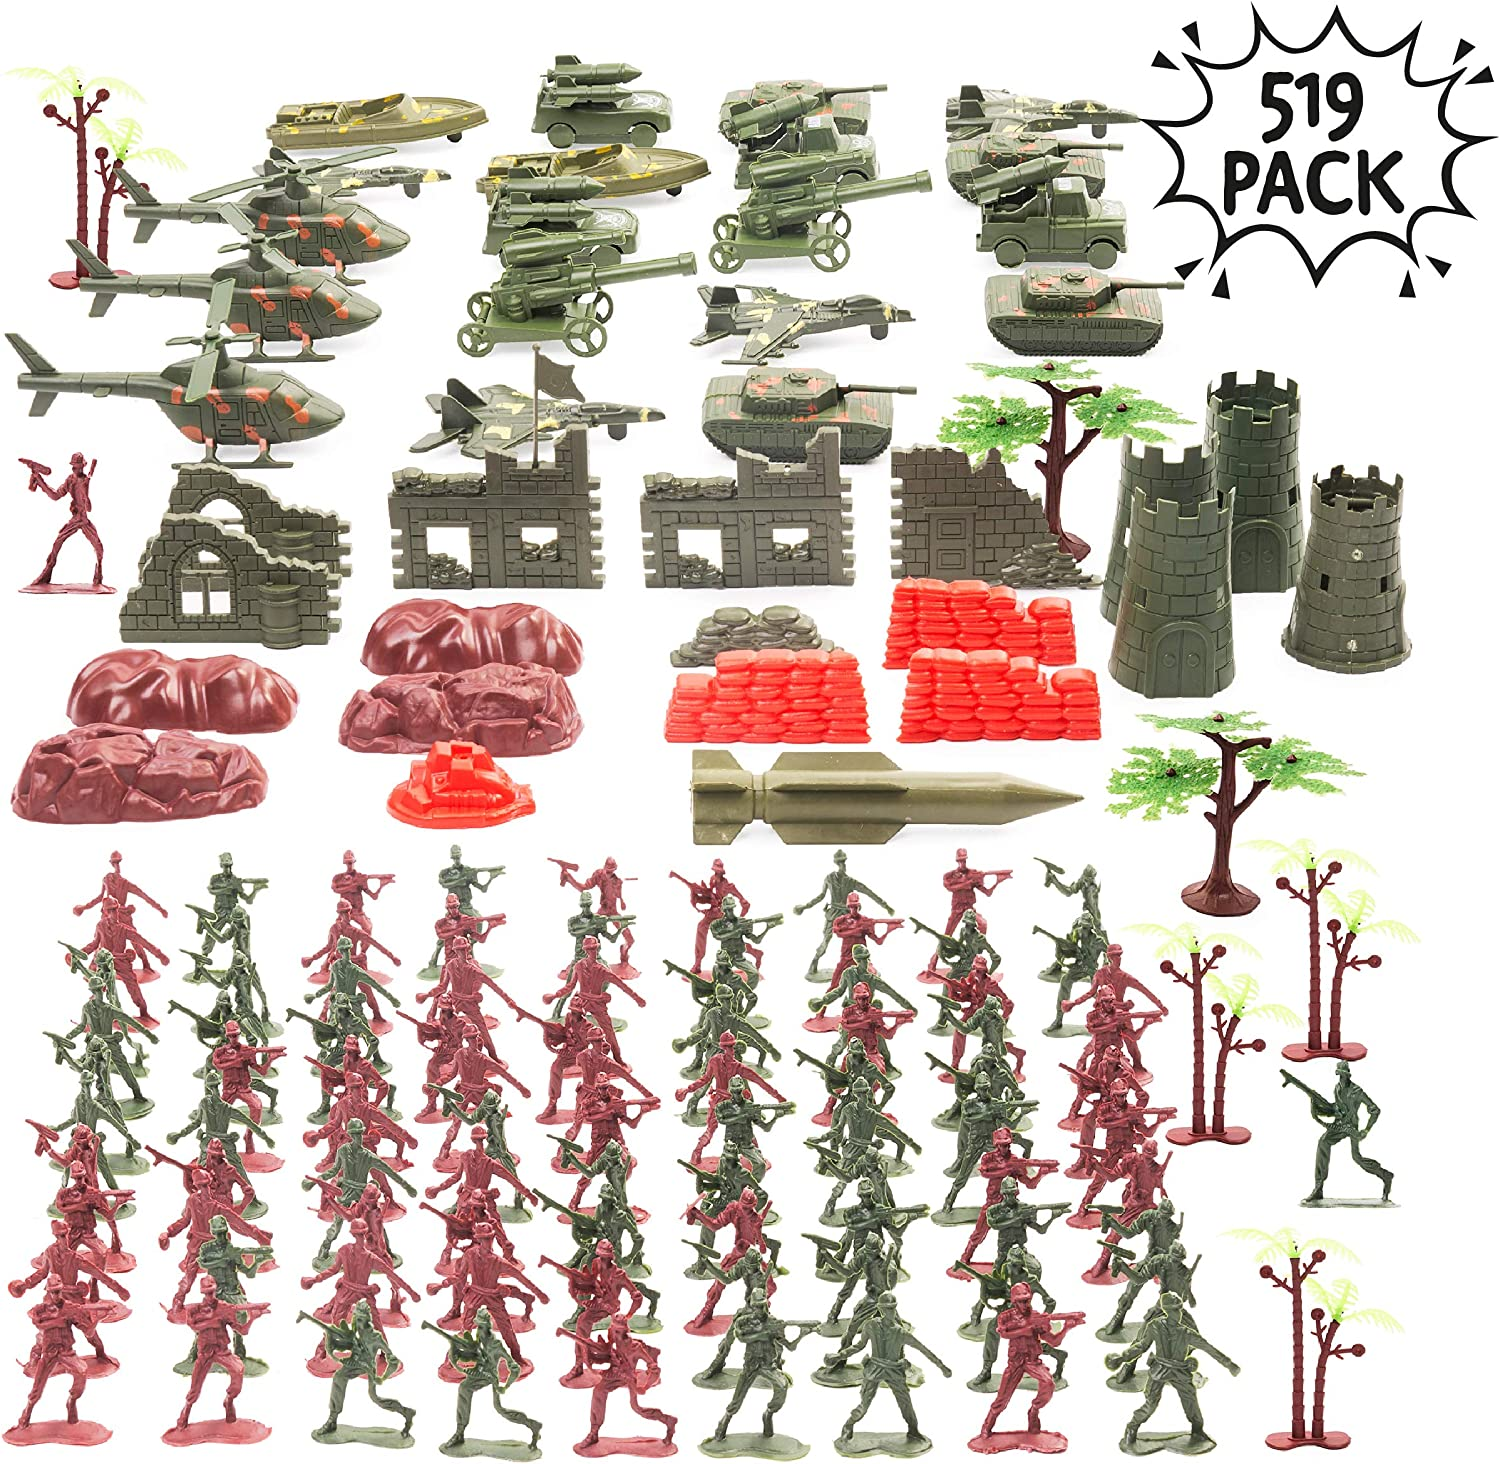 THE TWIDDLERS HUGE 519 Pieces Military Army Toys | Toy Soldiers Tanks WW 2 Military Soldier Battle Group Battlefield Accessories Playset | Play Bucket